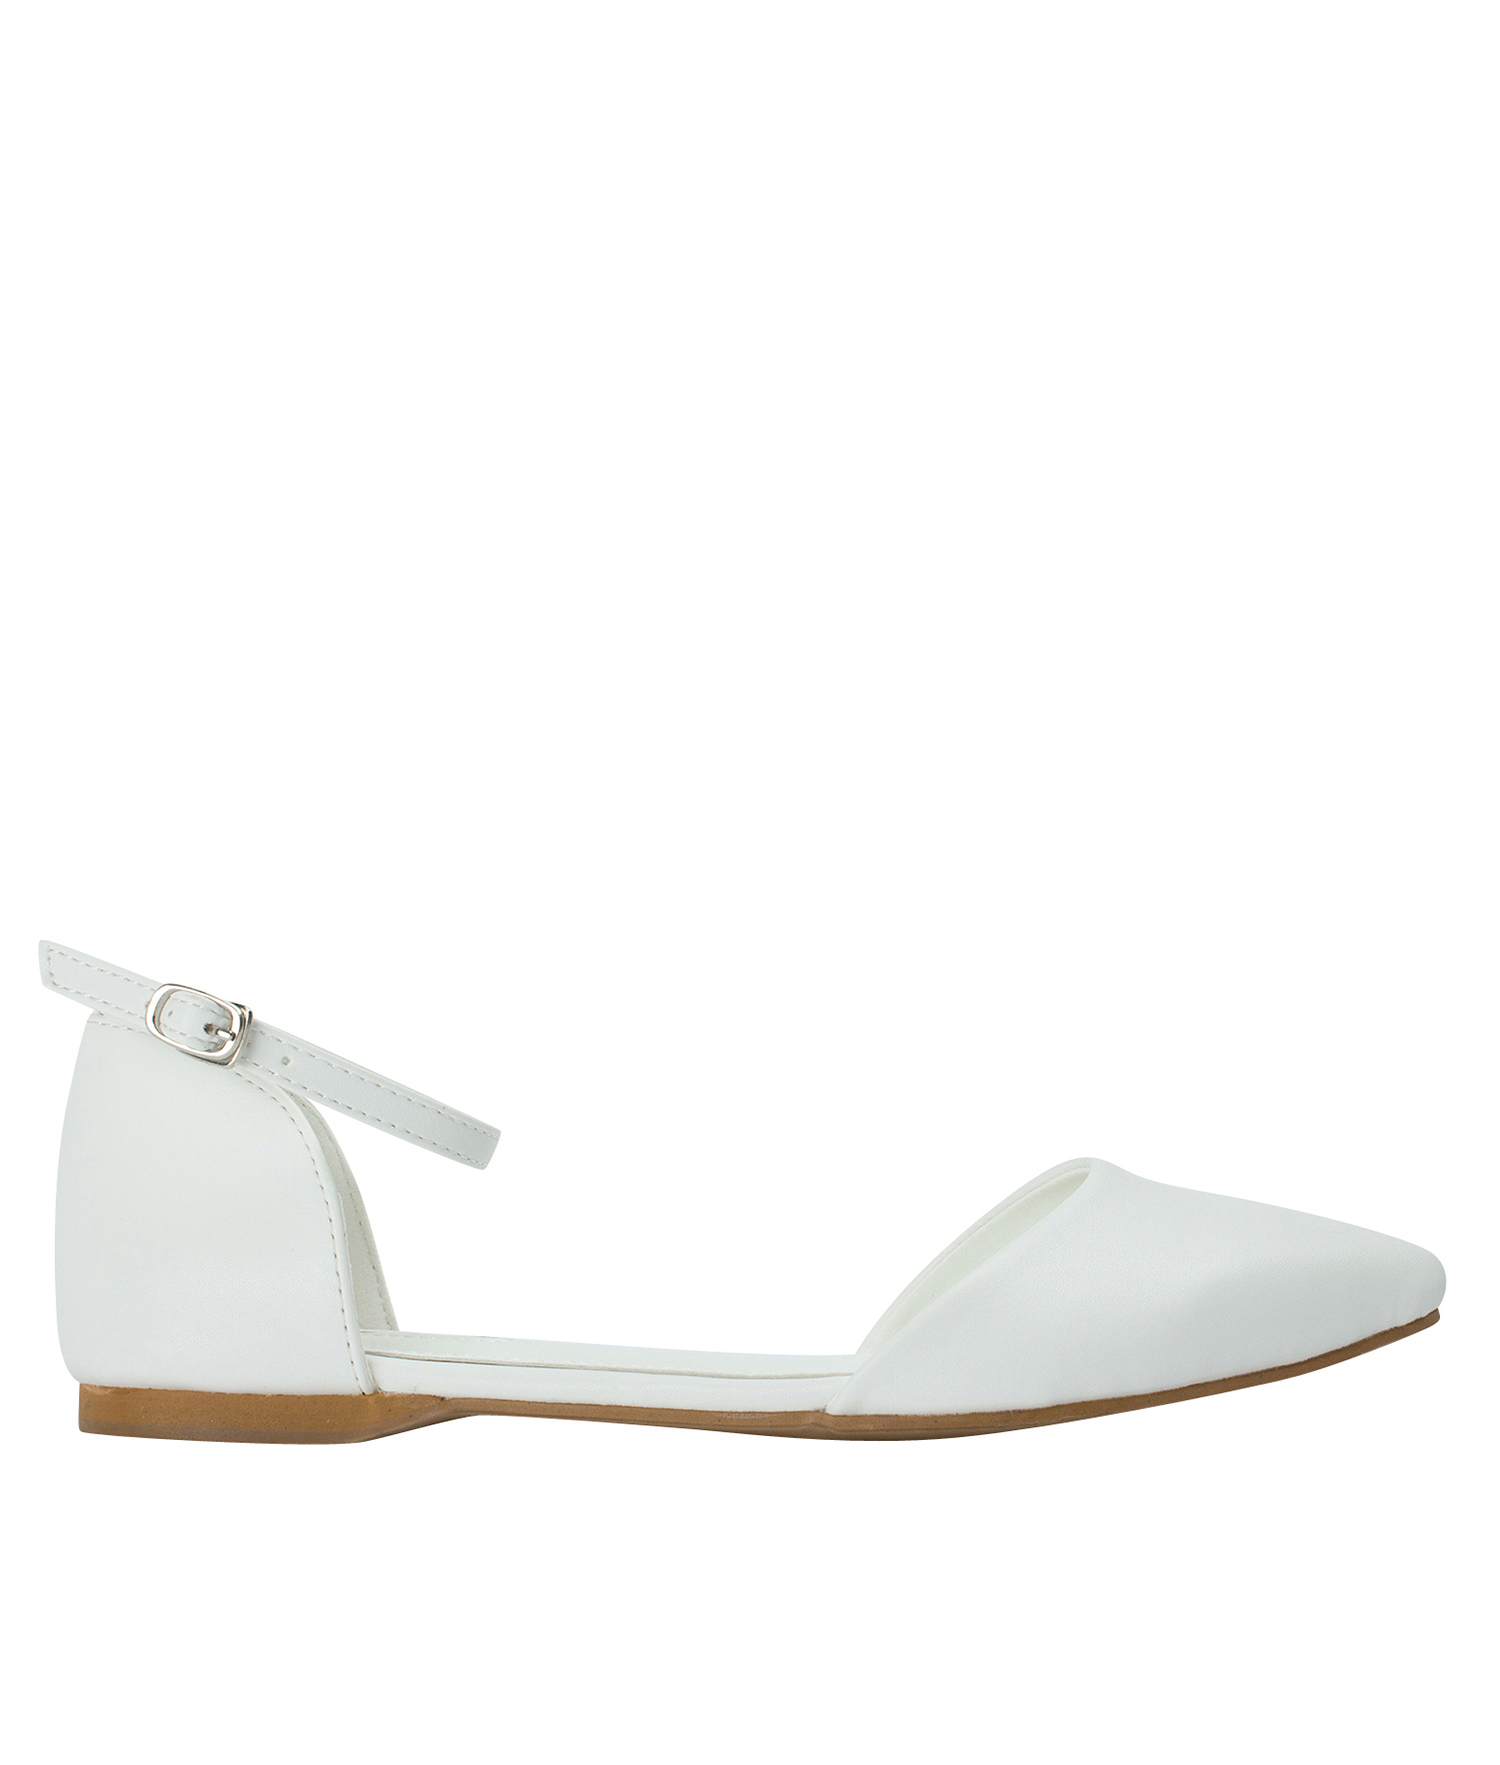 fe524338caf AnnaKastle Womens Pointed Toe Ankle-Strap d Orsay Flats White